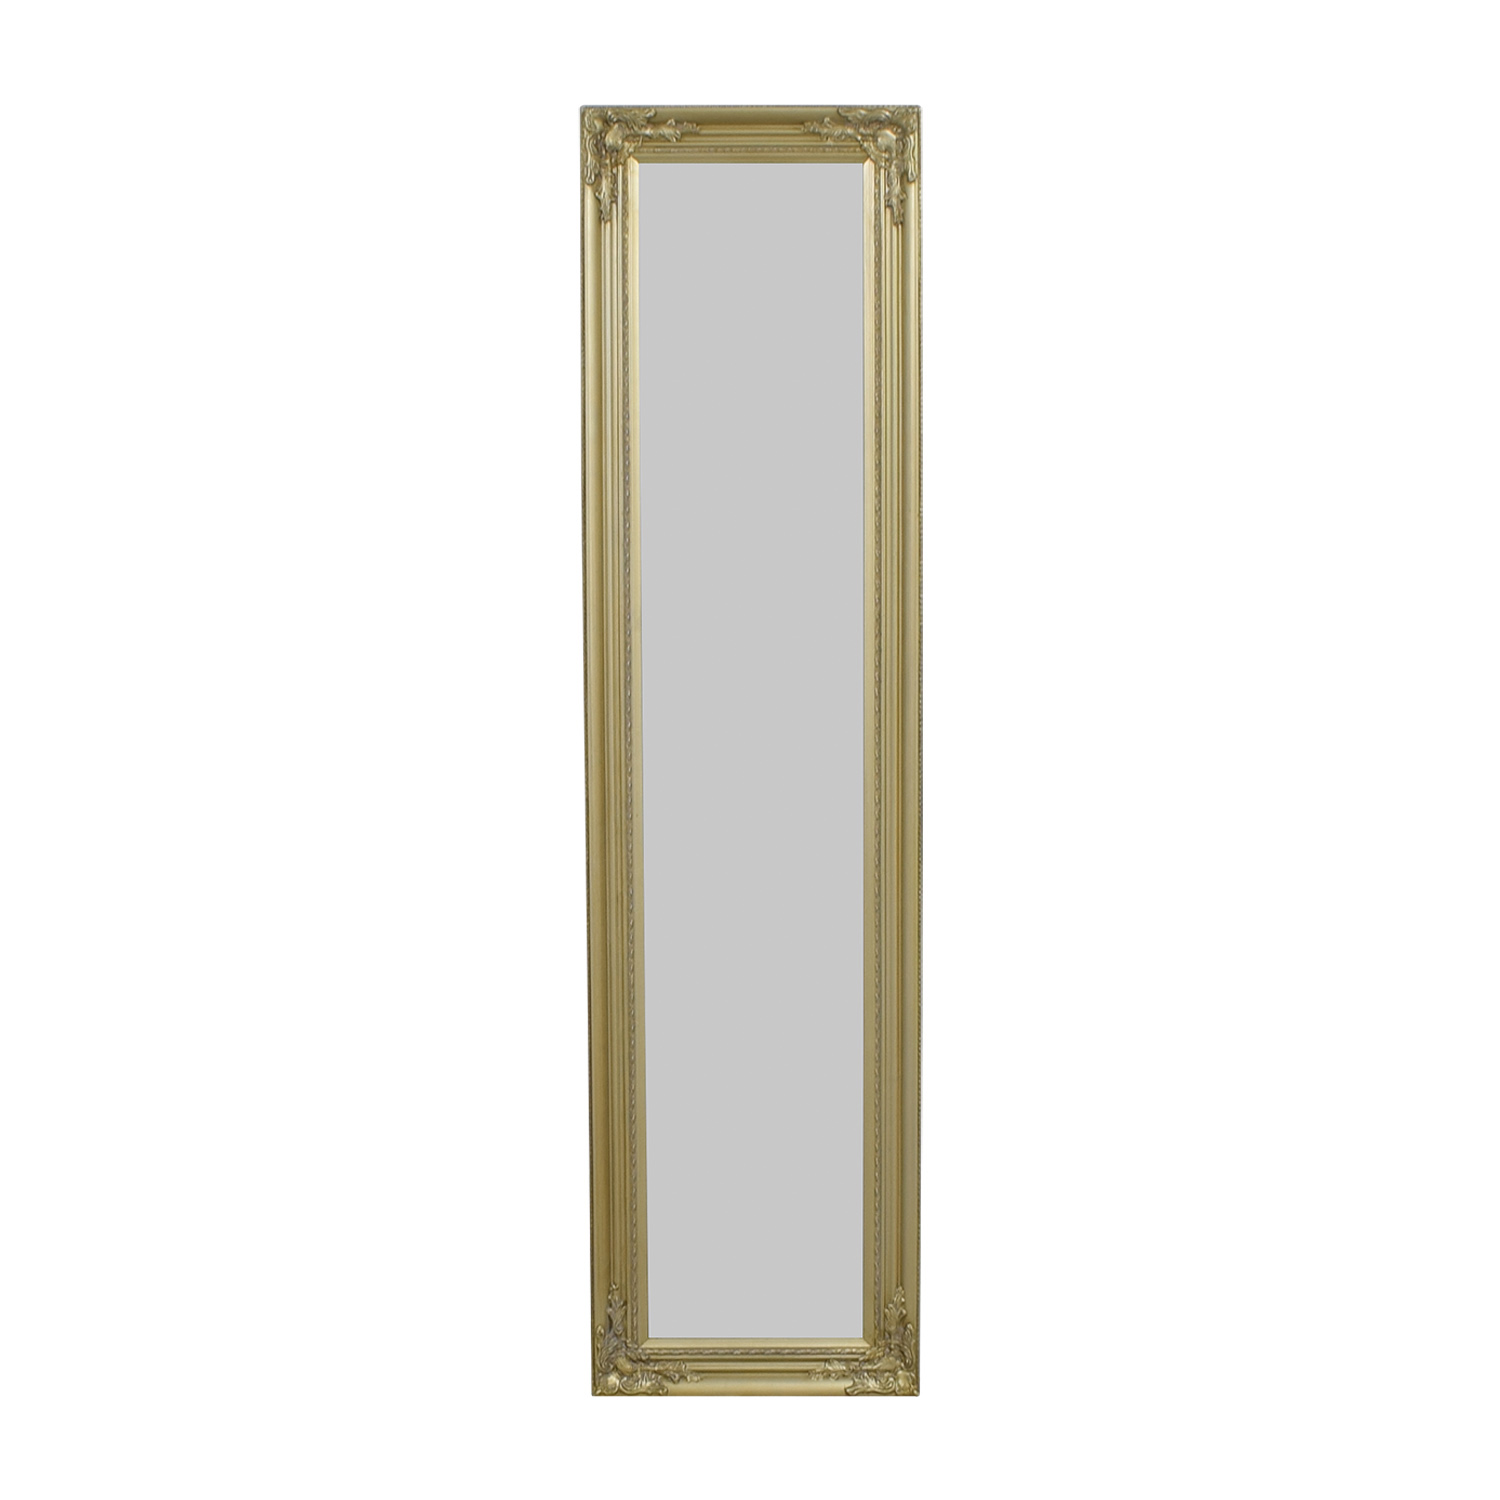 48 off full length ornate gold mirror decor for Decorative full length wall mirrors